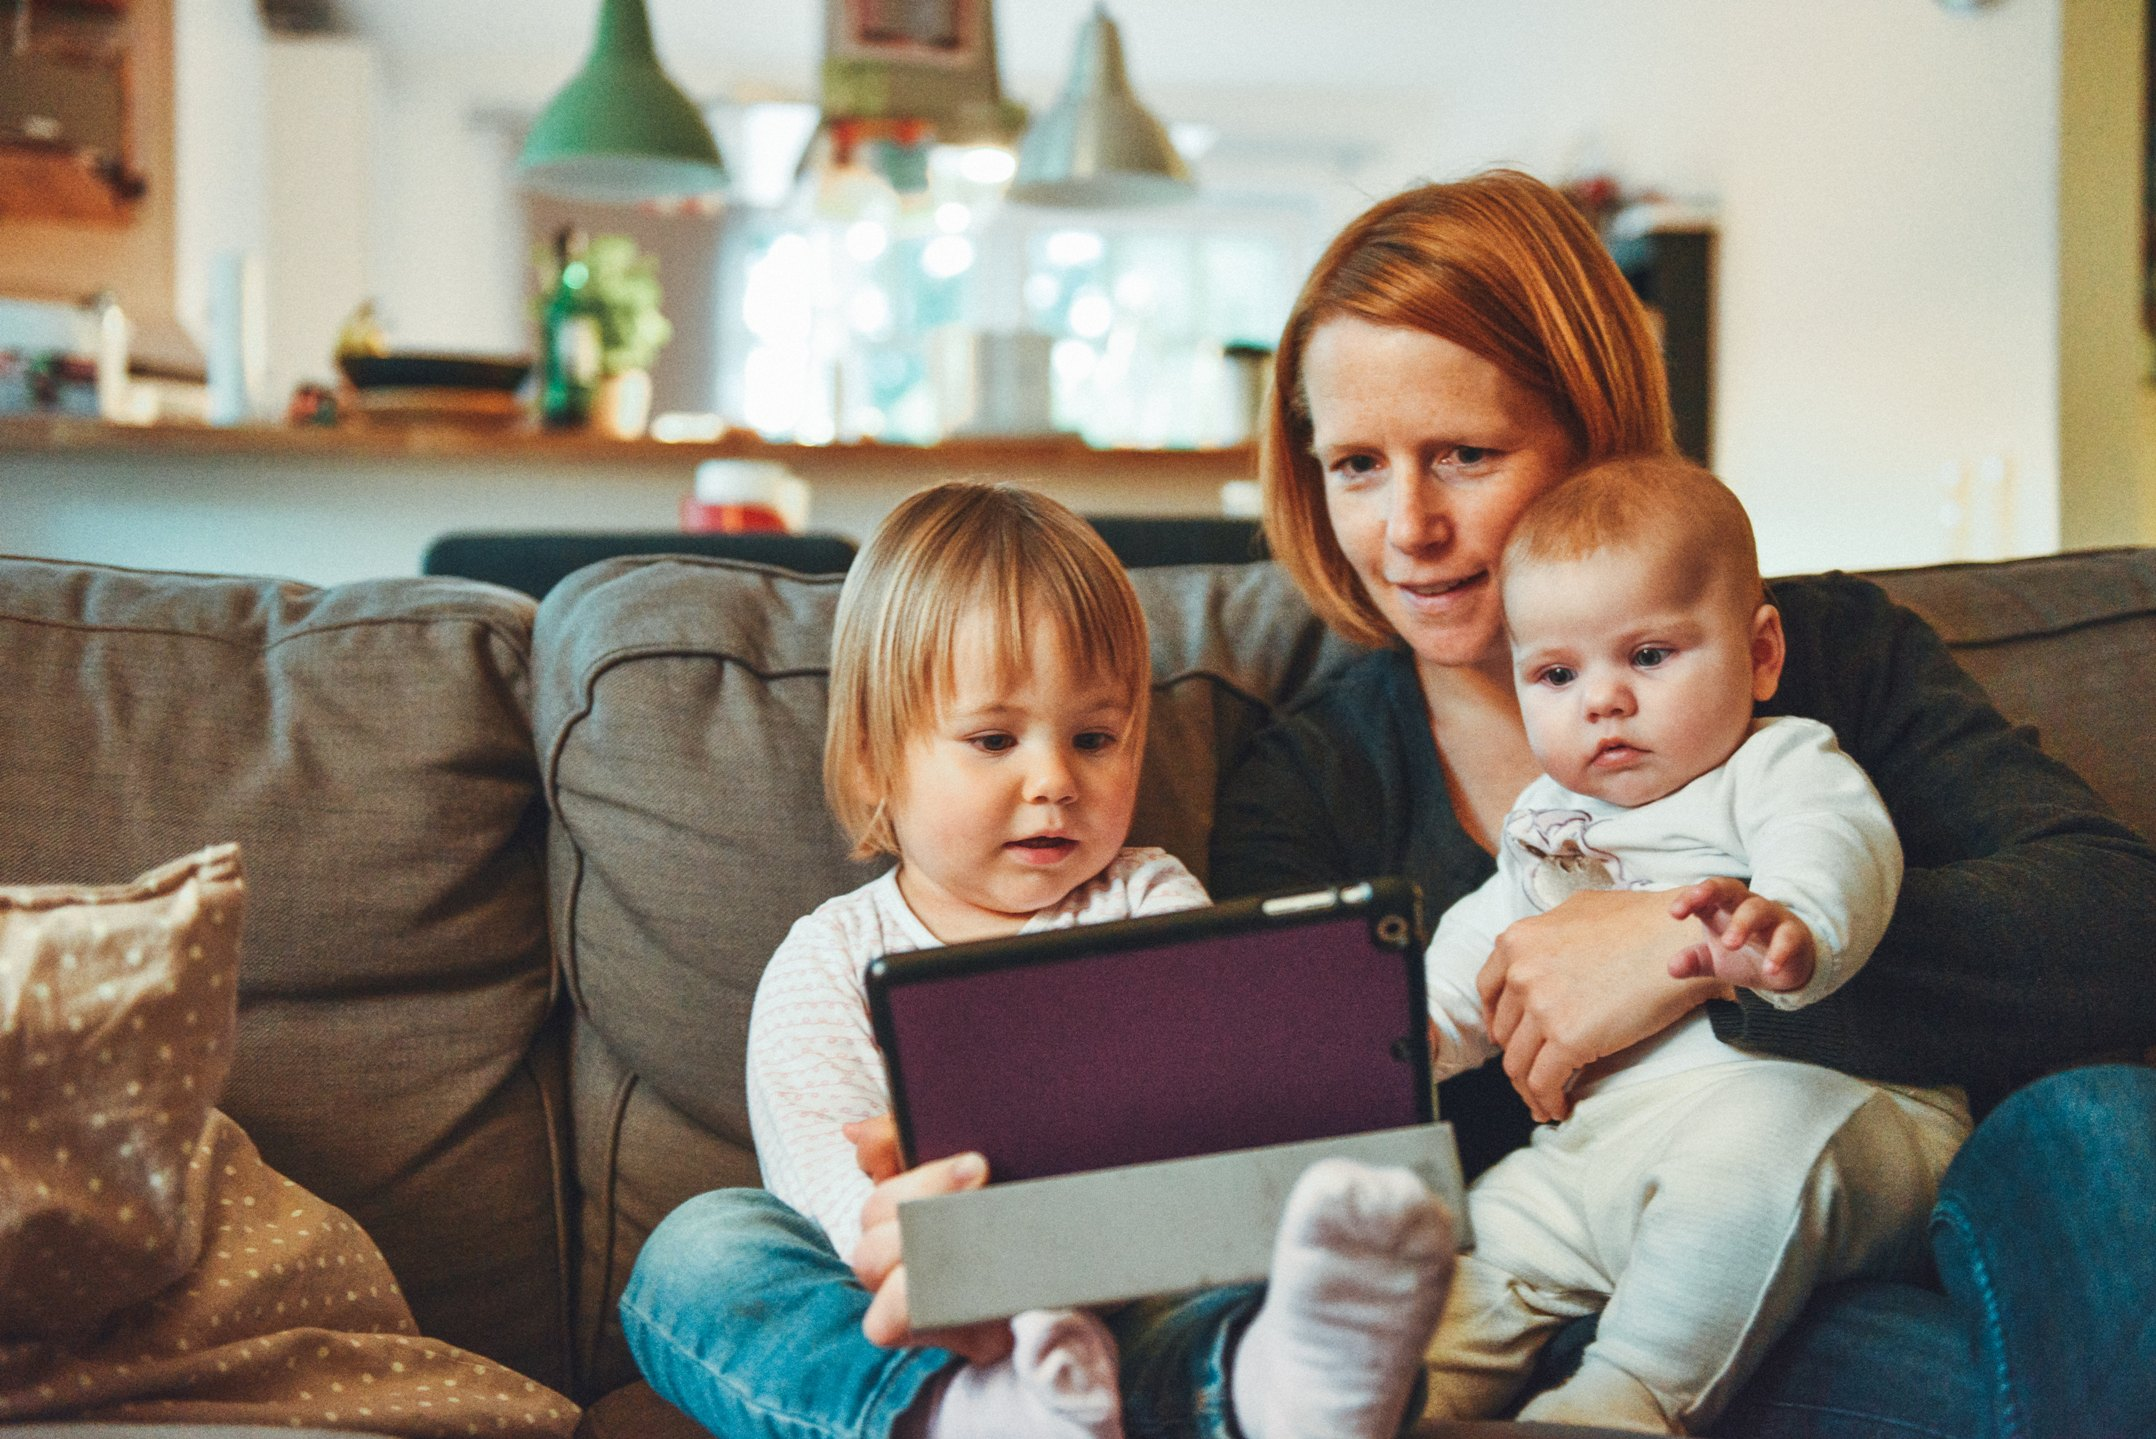 Mother and children using a tablet